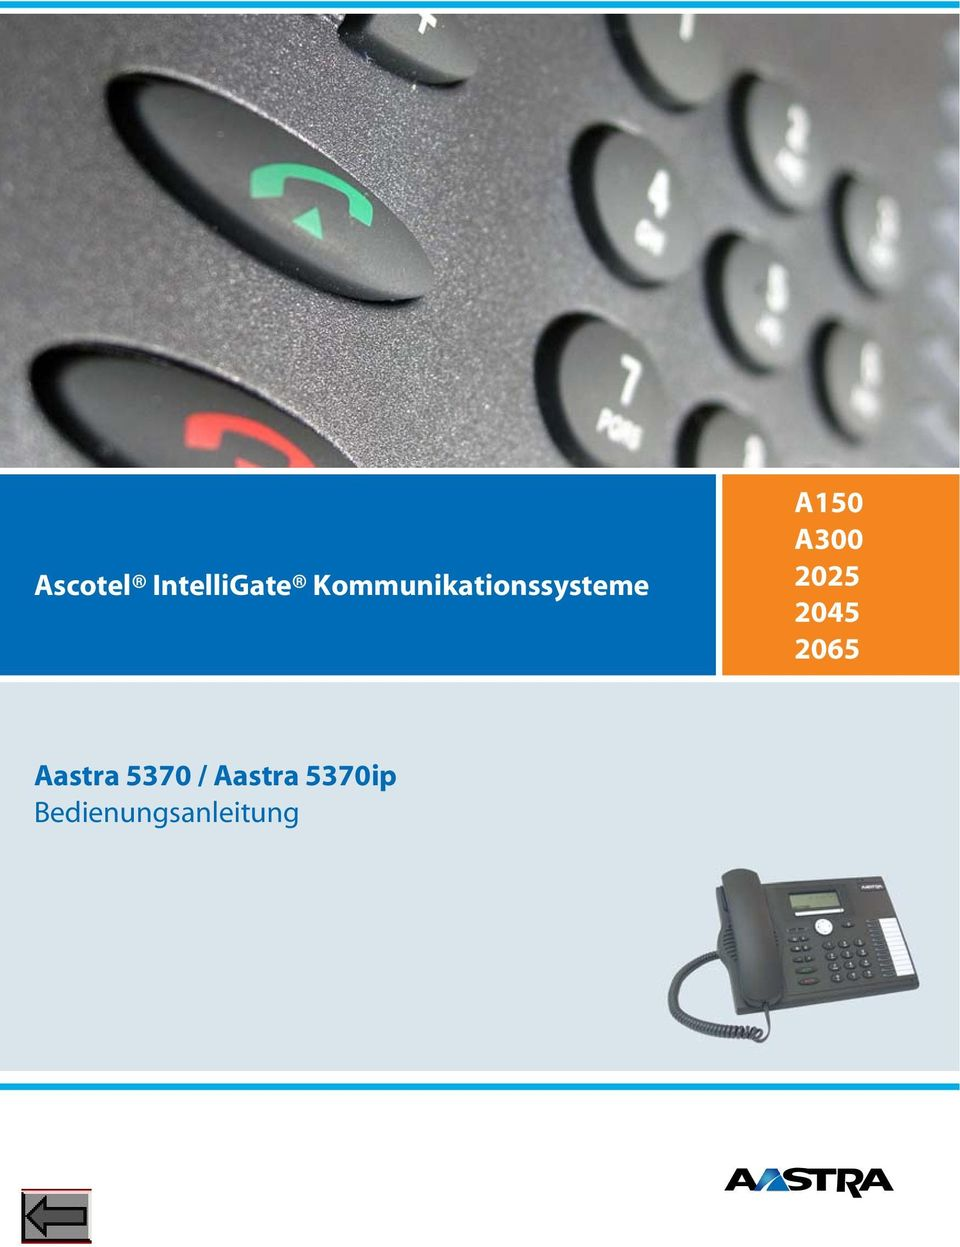 A300 2025 2045 2065 Aastra